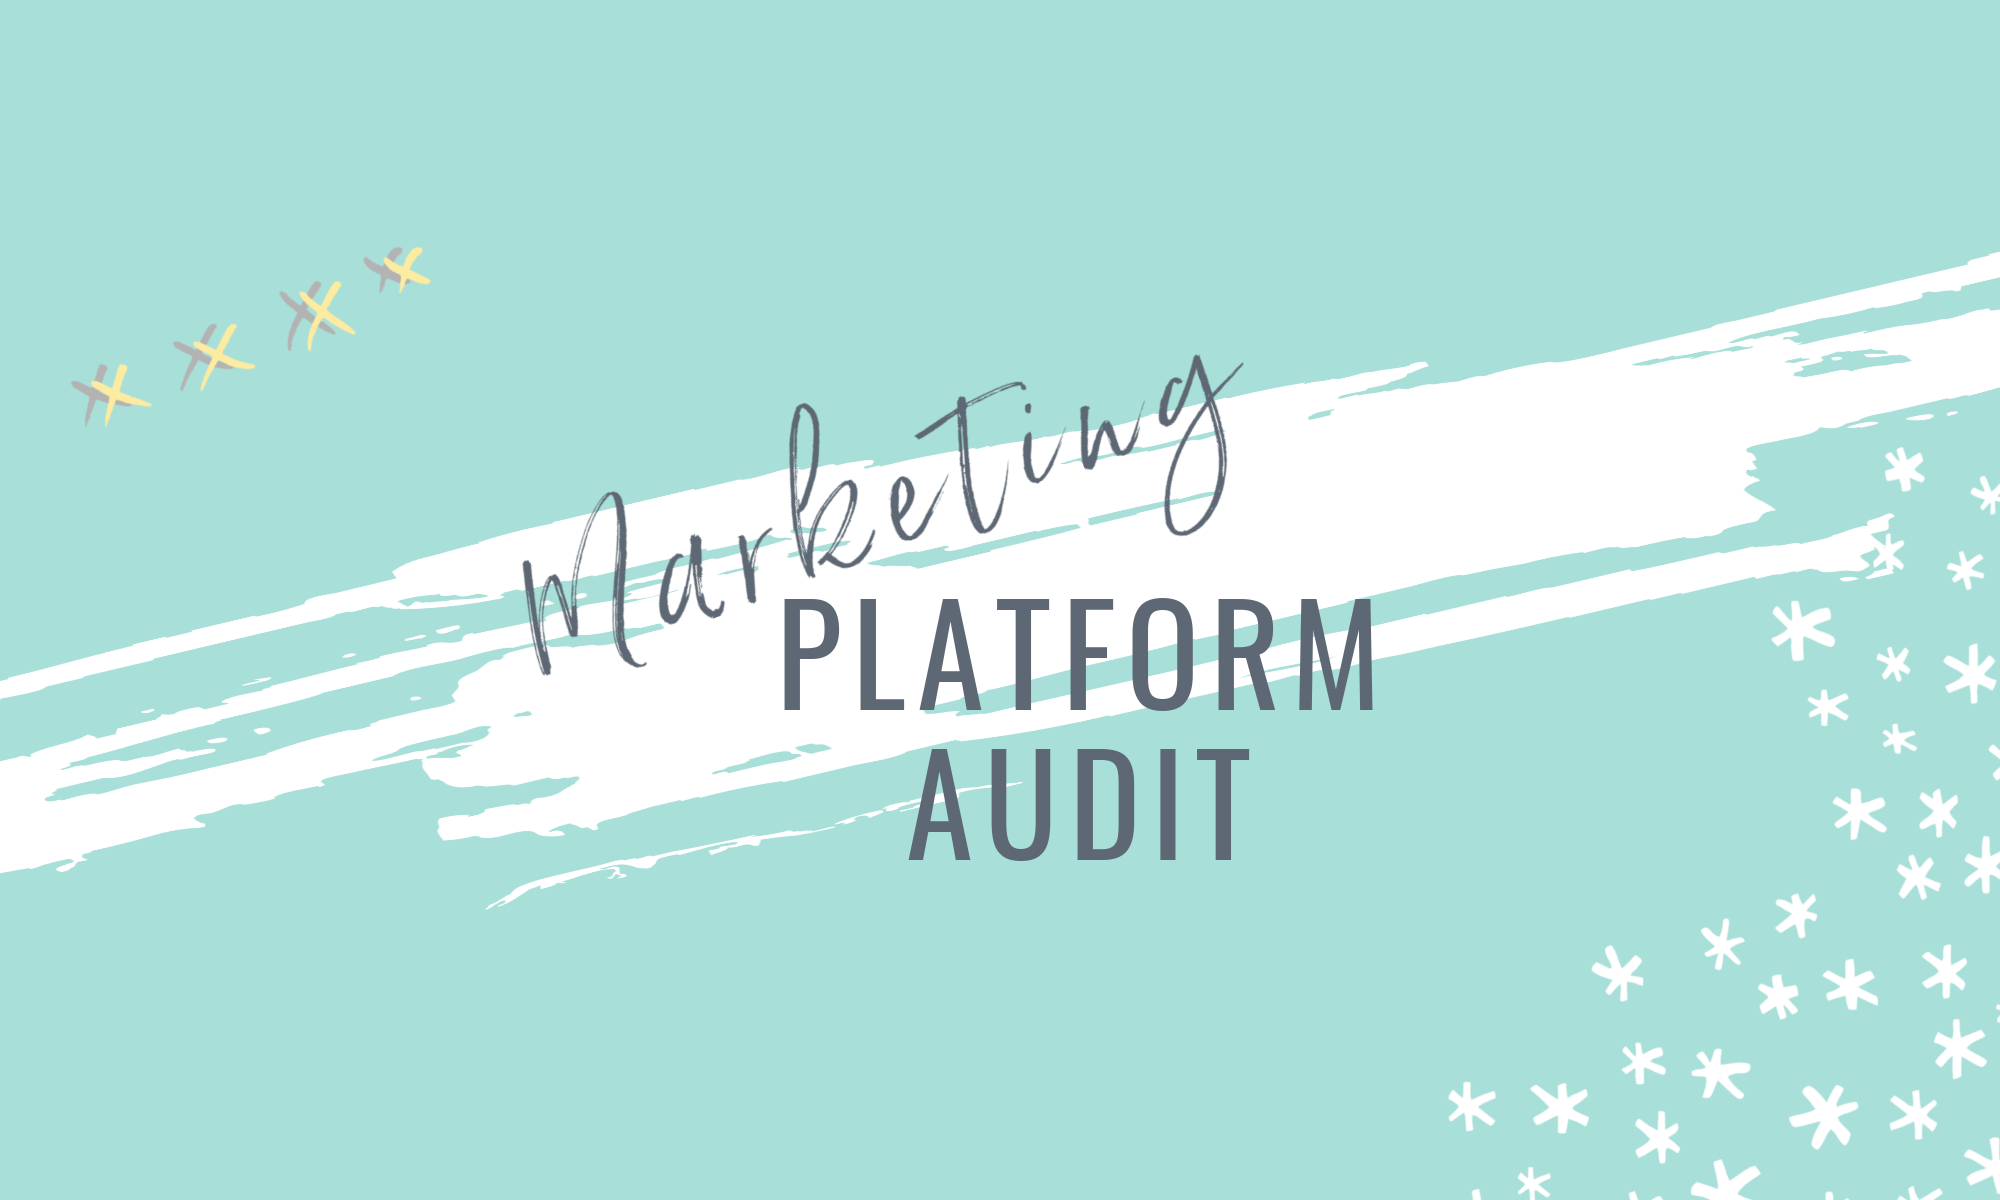 MARKETING PLATFORM AUDIT